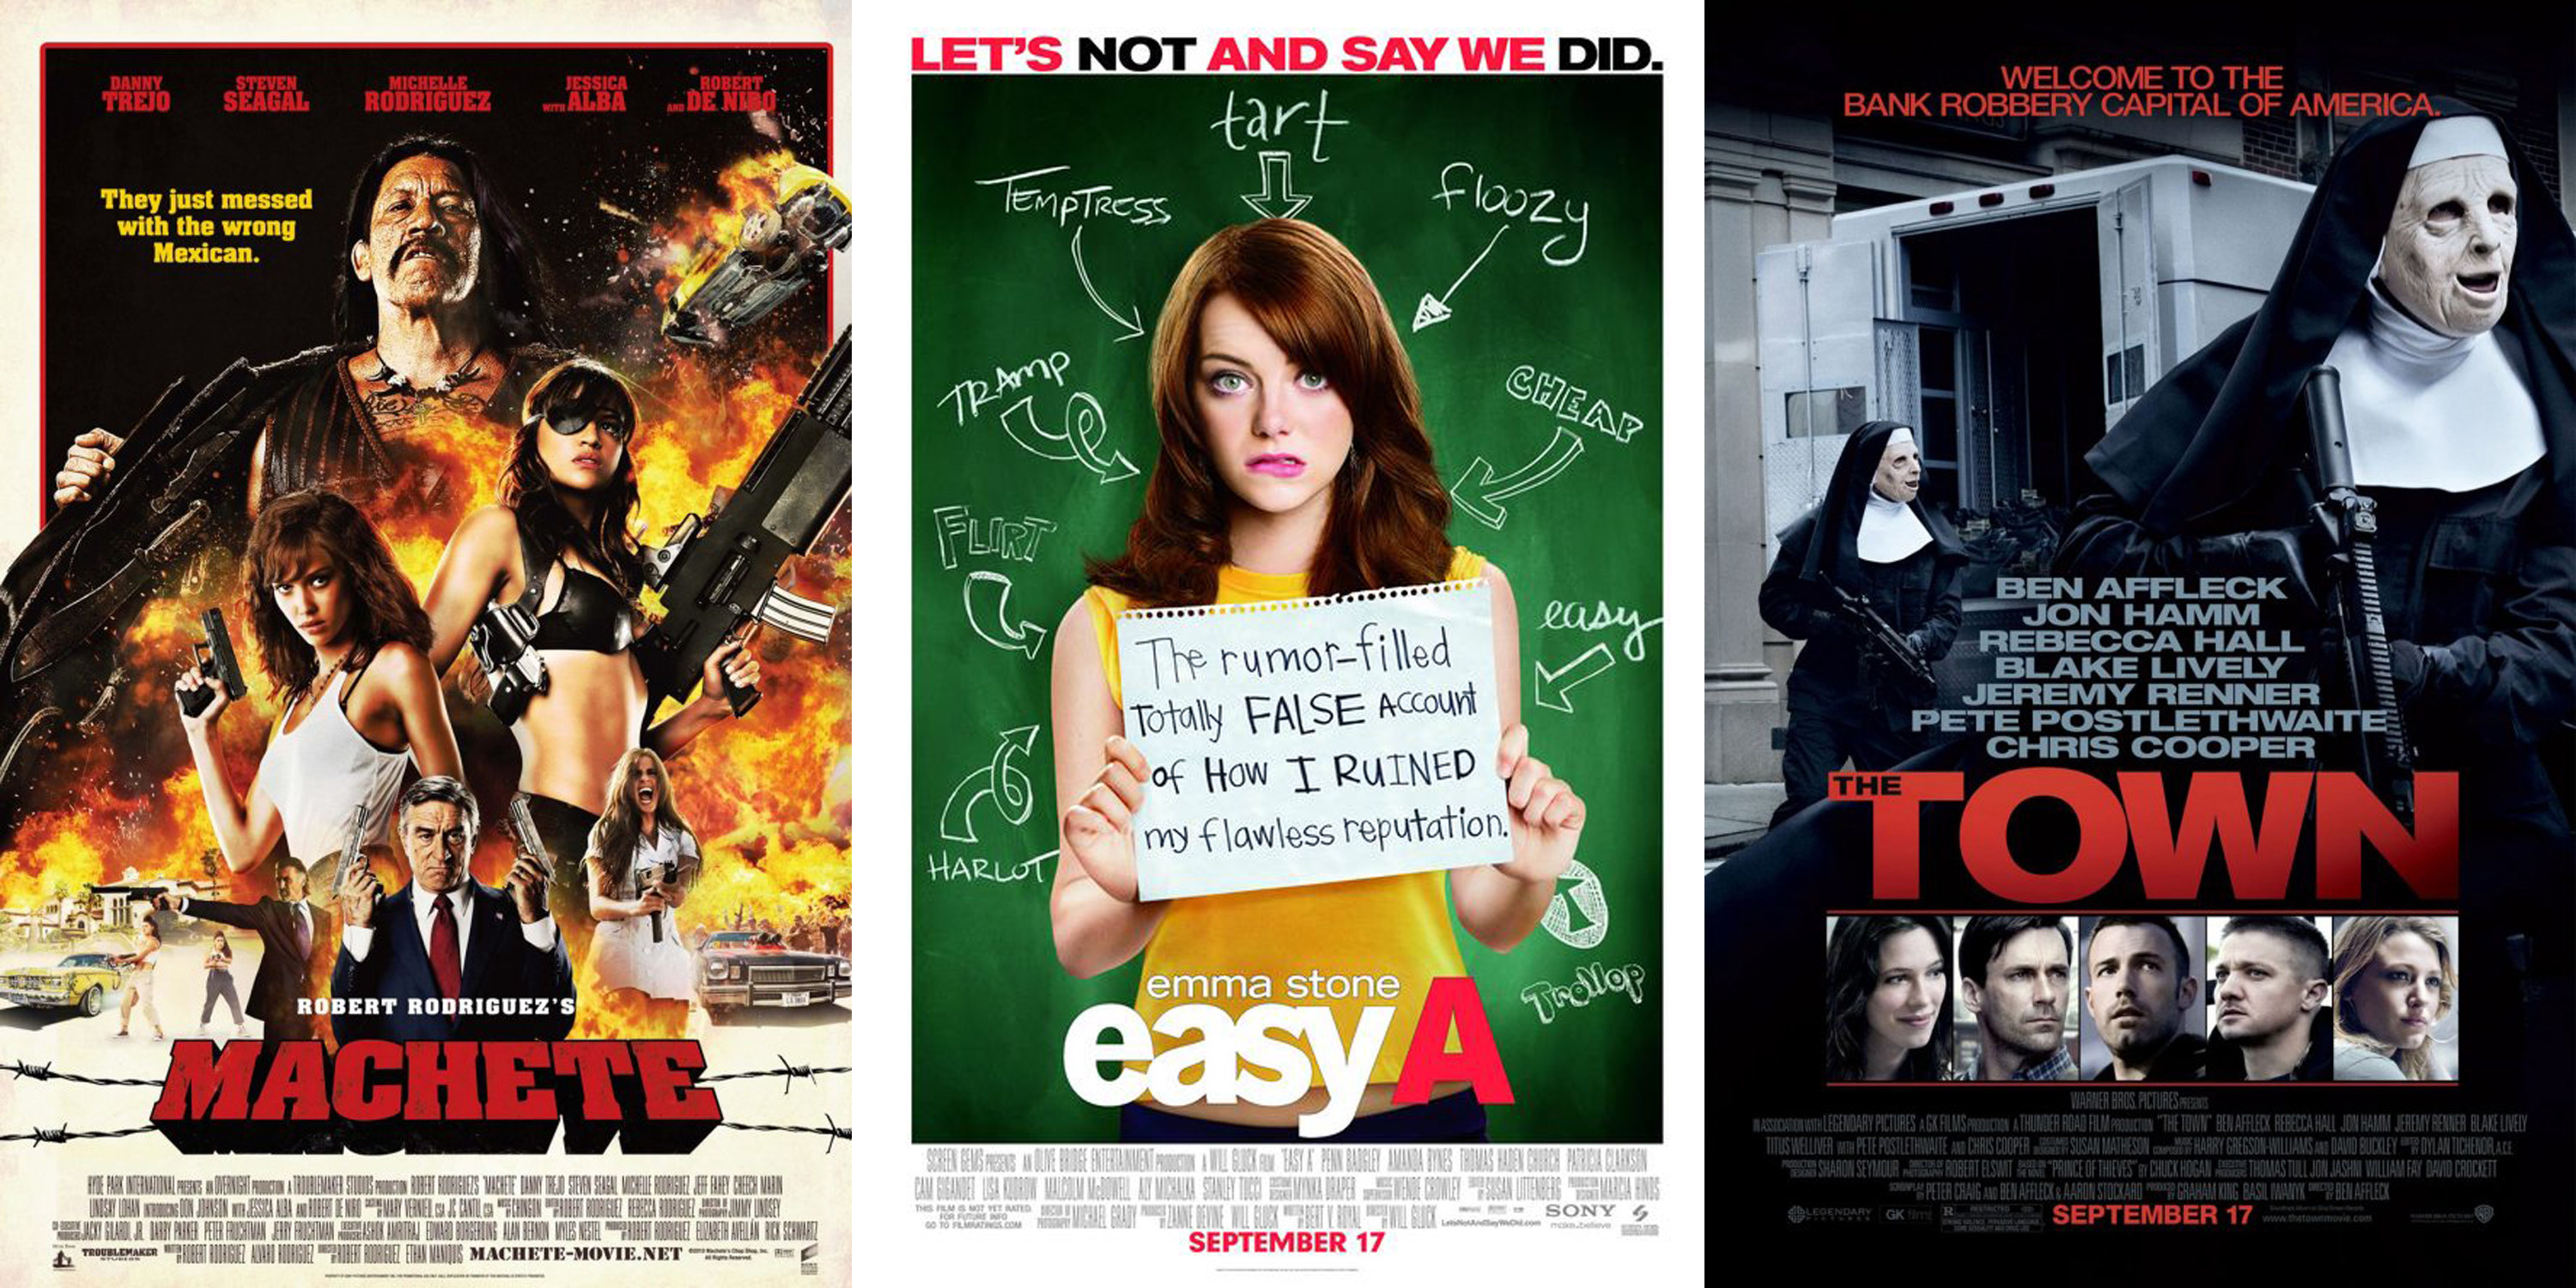 The movie poster for Matchete, Easy A, and The Town